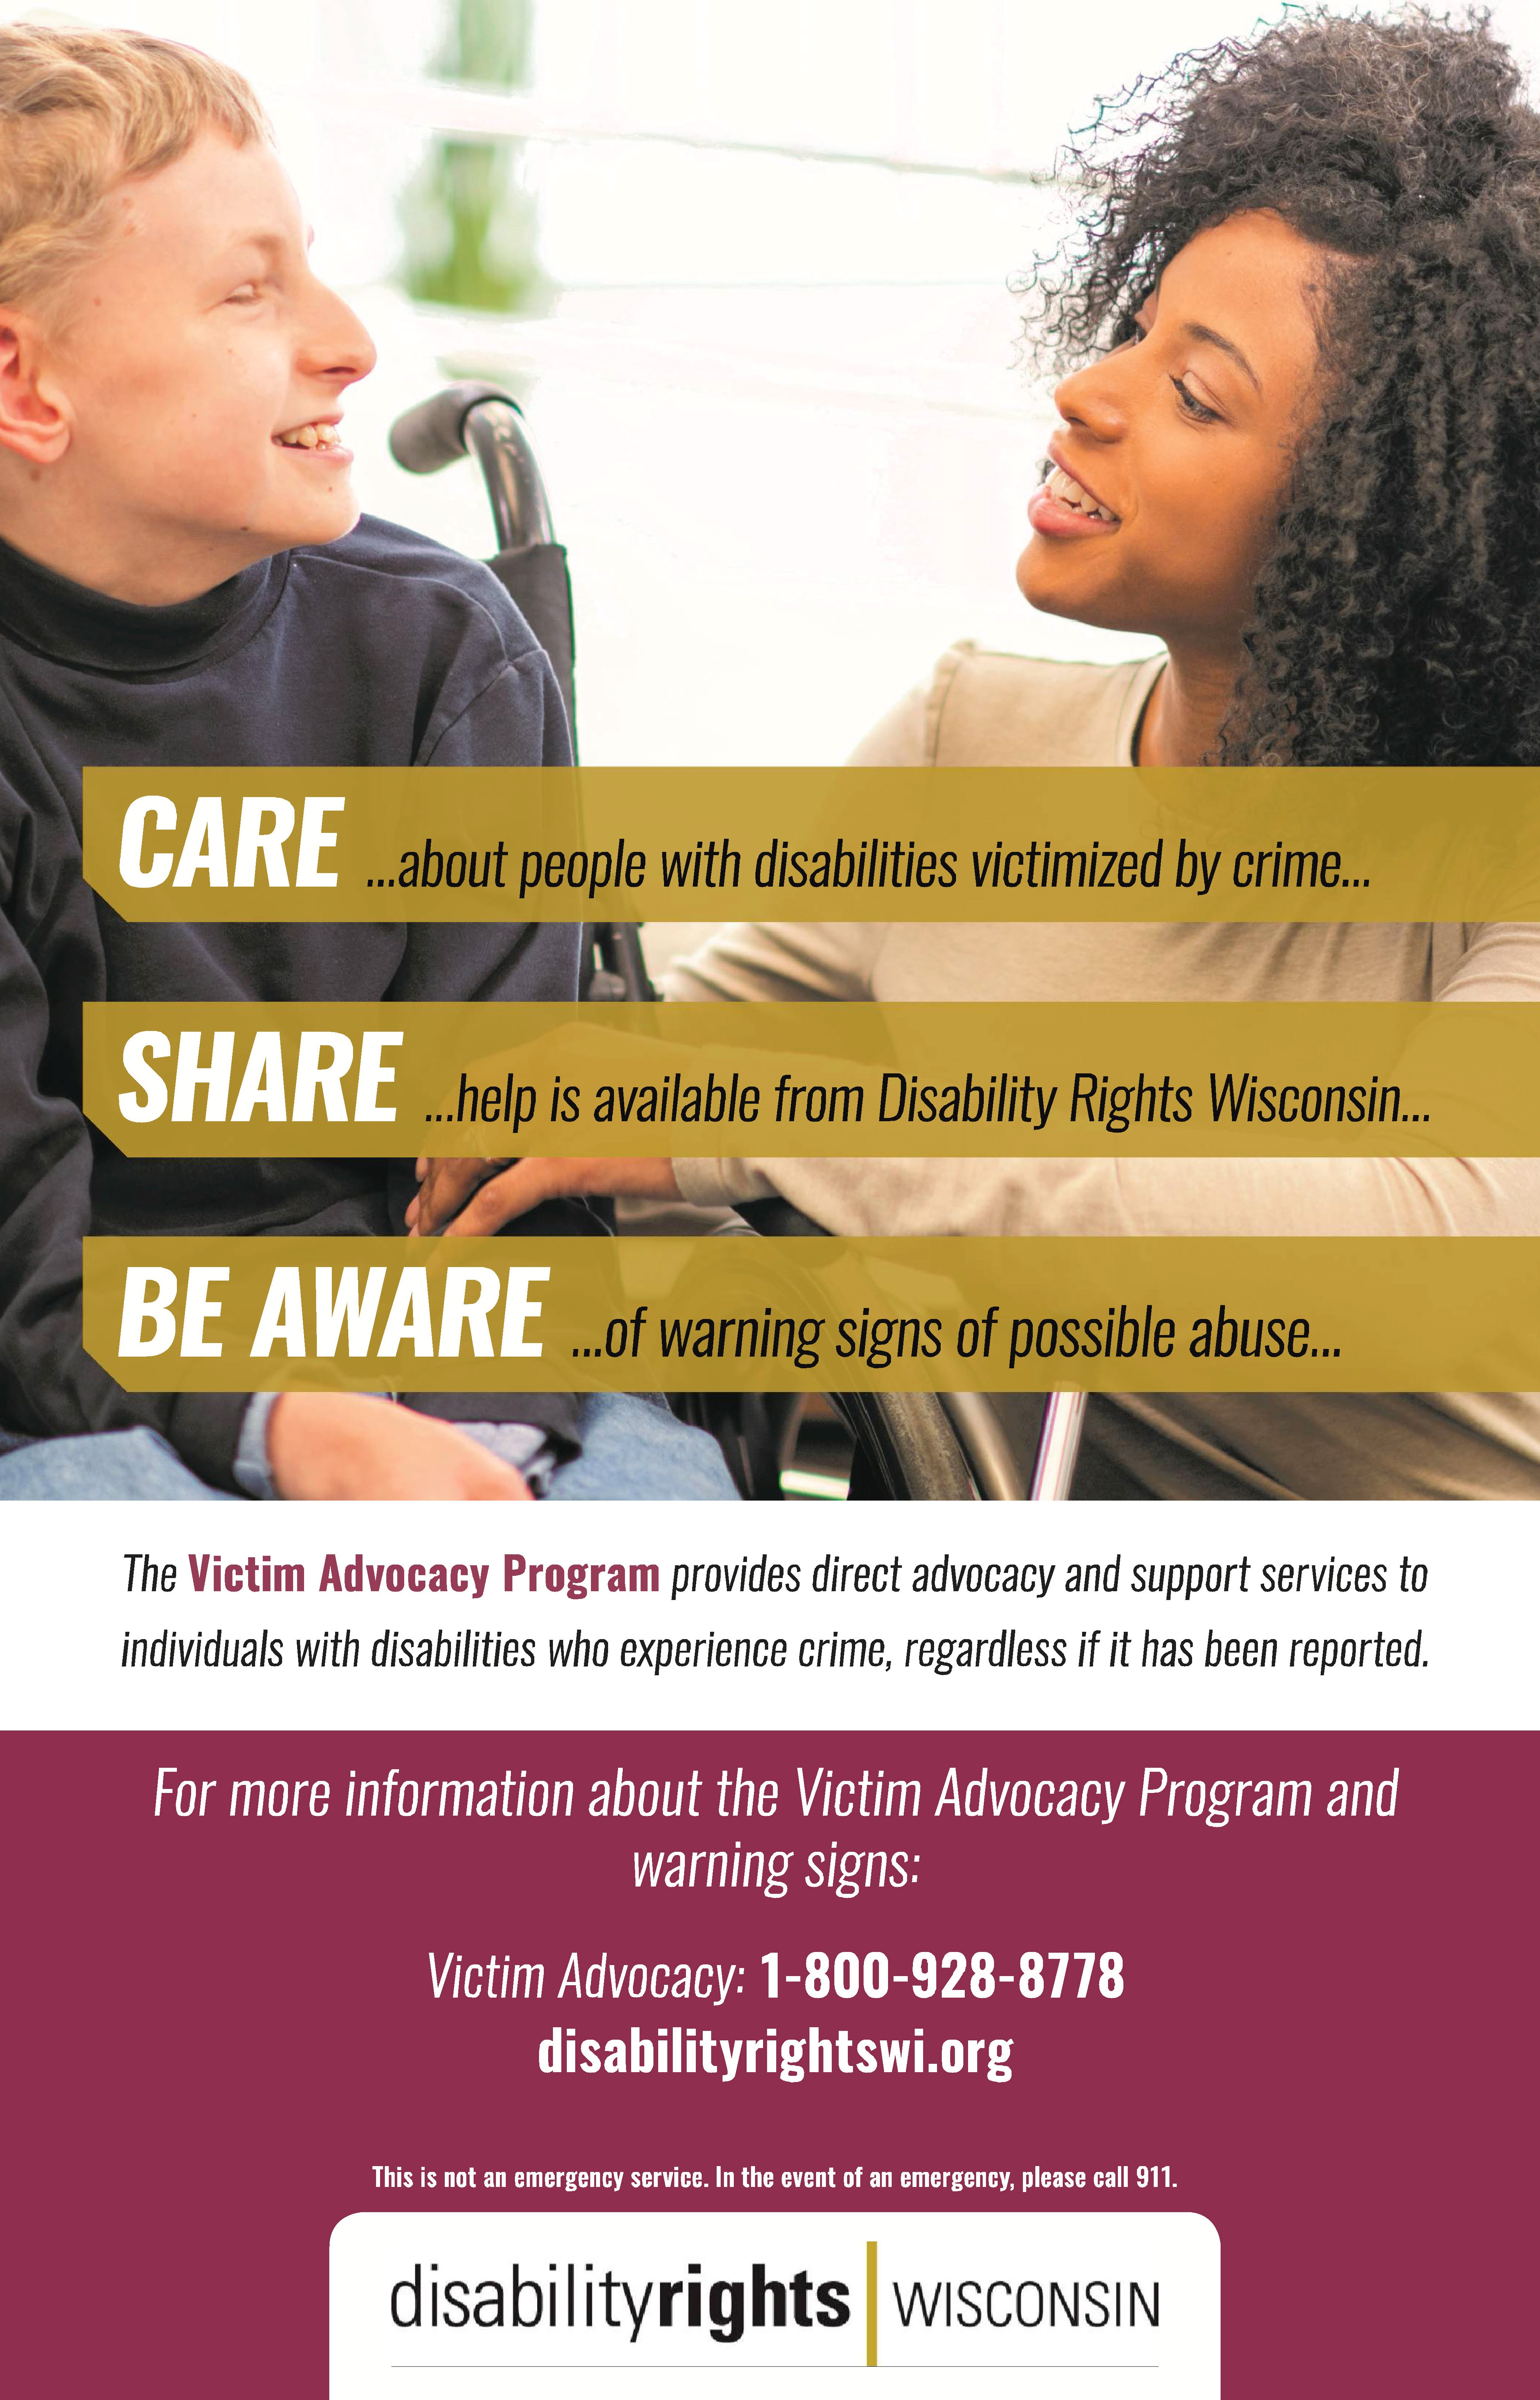 Care about people with disabilities victimized by crime, Share- help is available from Disability Rights Wisconsin, Be aware of warning signs of possible abuse. The Victim Advocacy Program provides direct advocacy and support services to individuals with disabilities who experience crime, regardless if it has been reported. For more information about the Victim Advocacy Program and warning signs: Victim Advocacy: 1-800-928-8778, disabilityrightswi.org, This is not an emergency service. In the event of an emergency, please call 911. Disability Rights Wisconsin